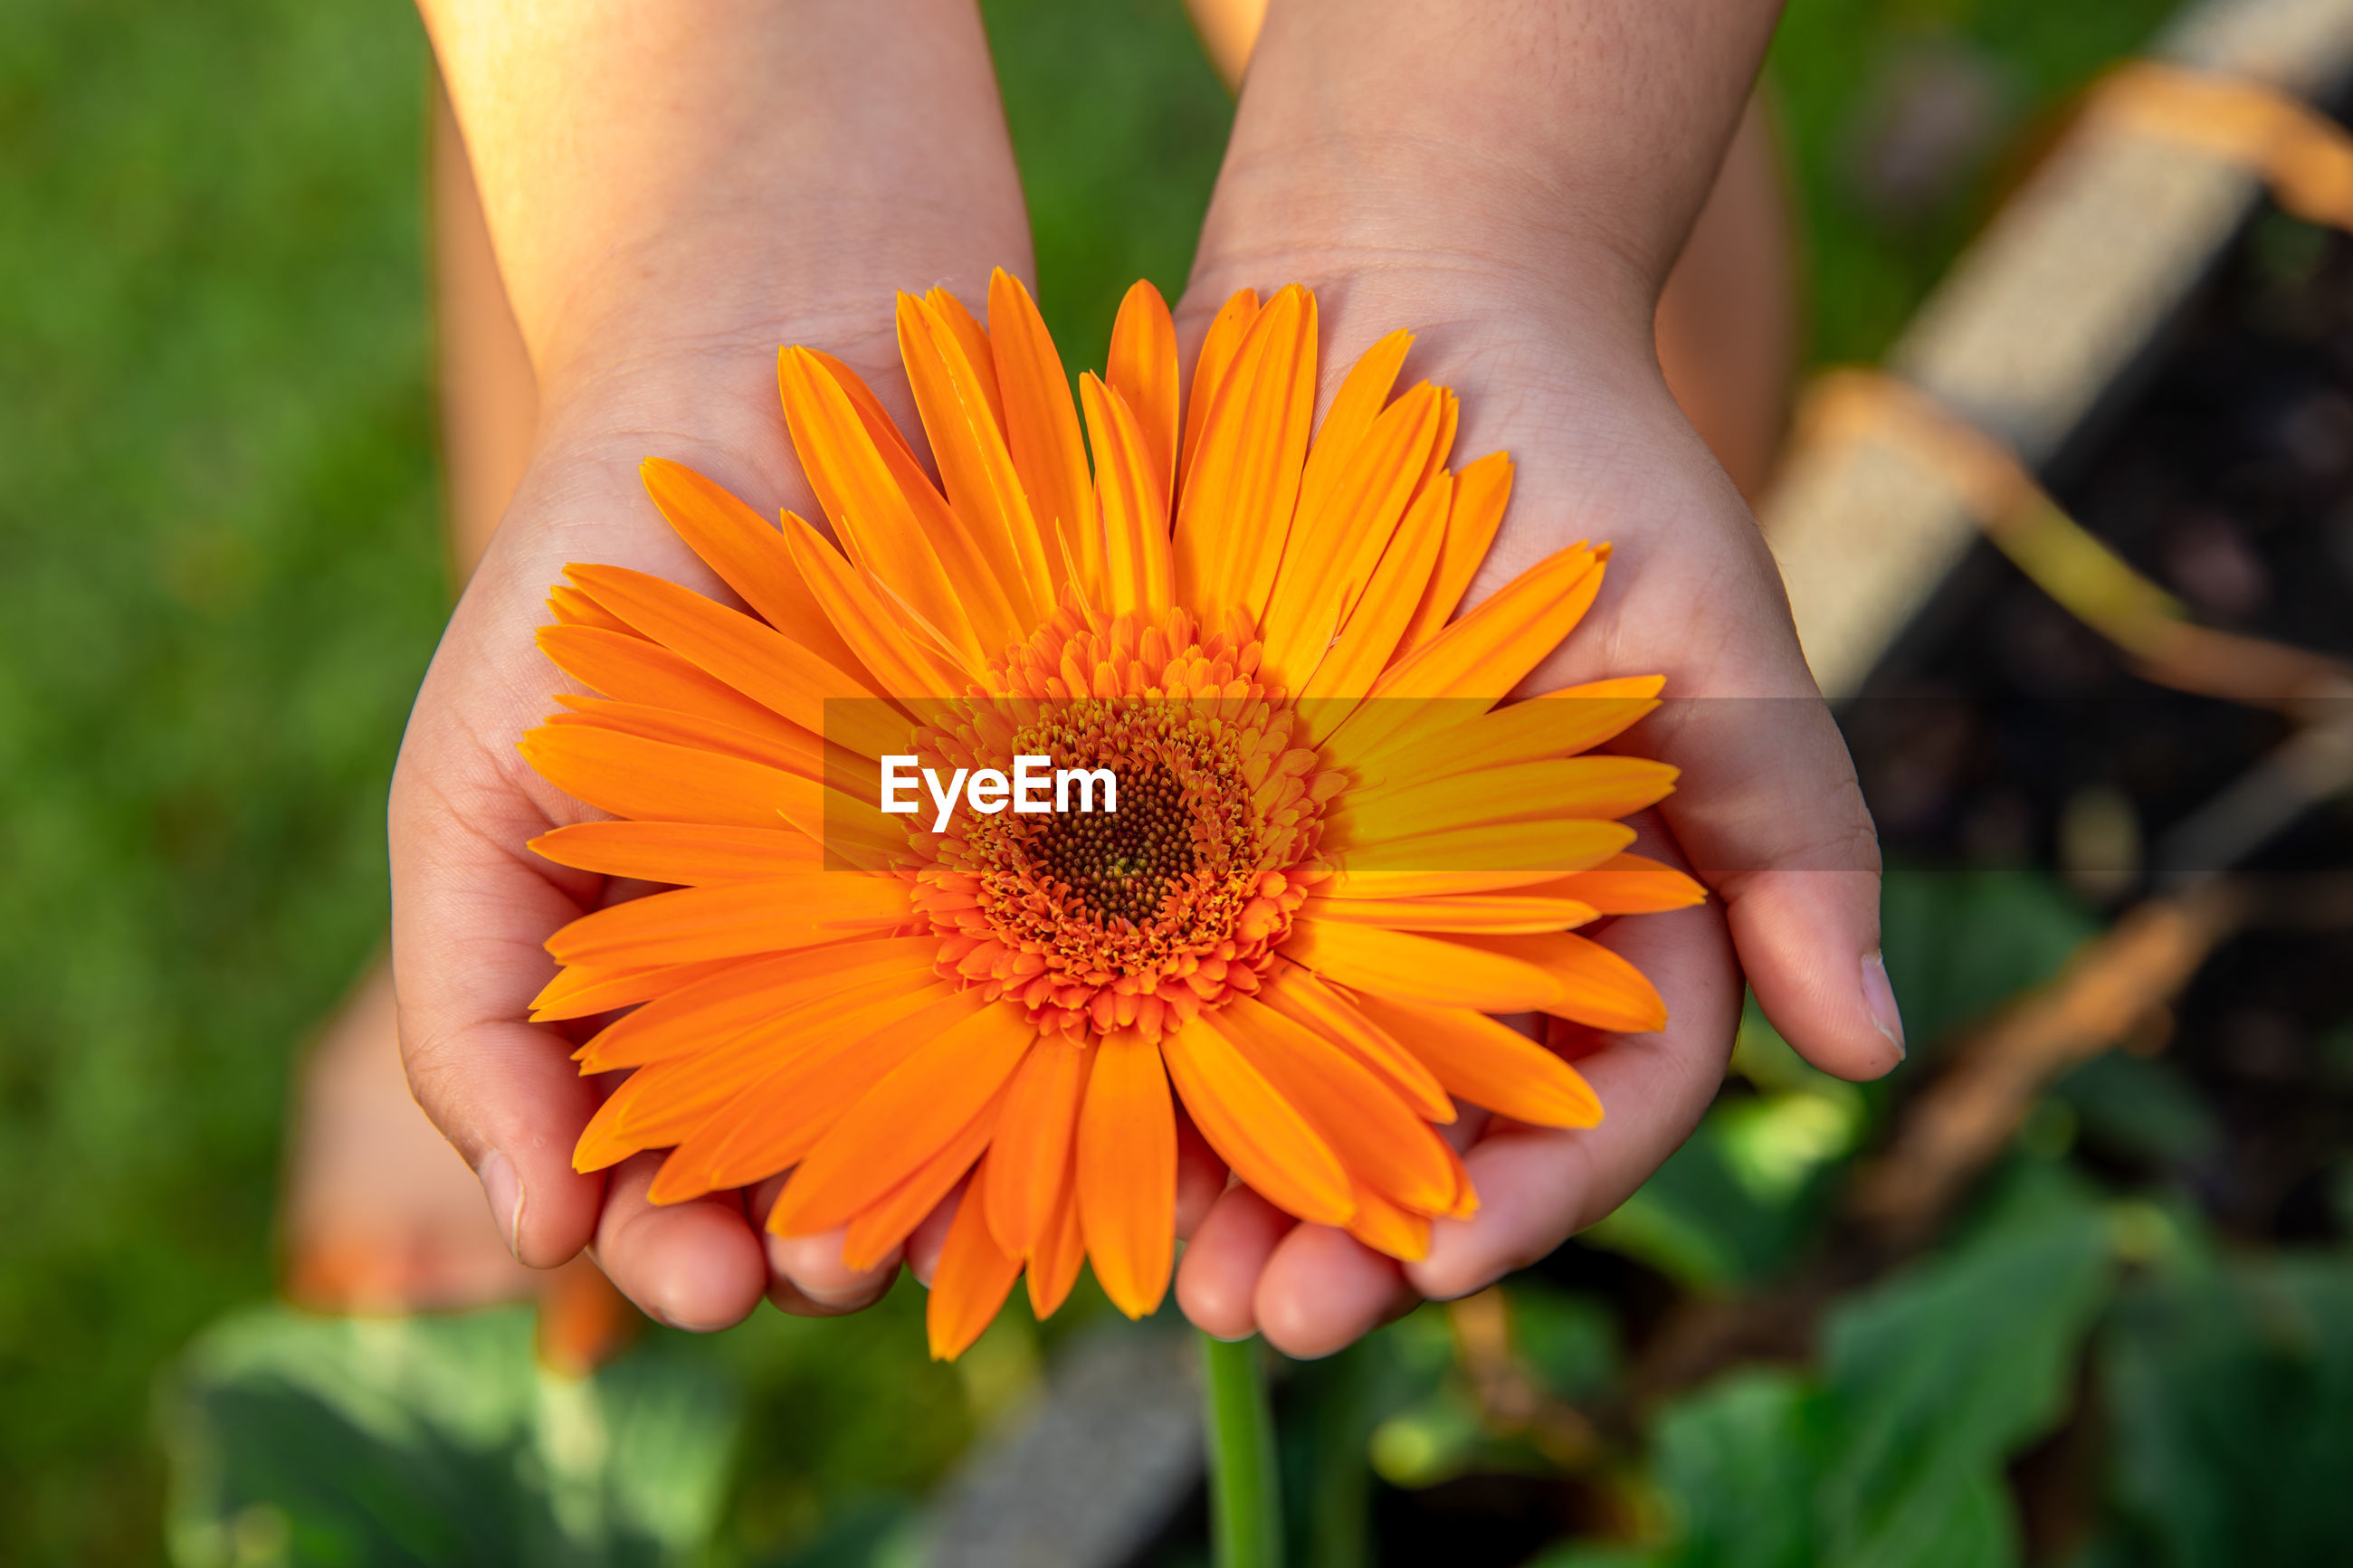 Cropped hands of person holding orange flower